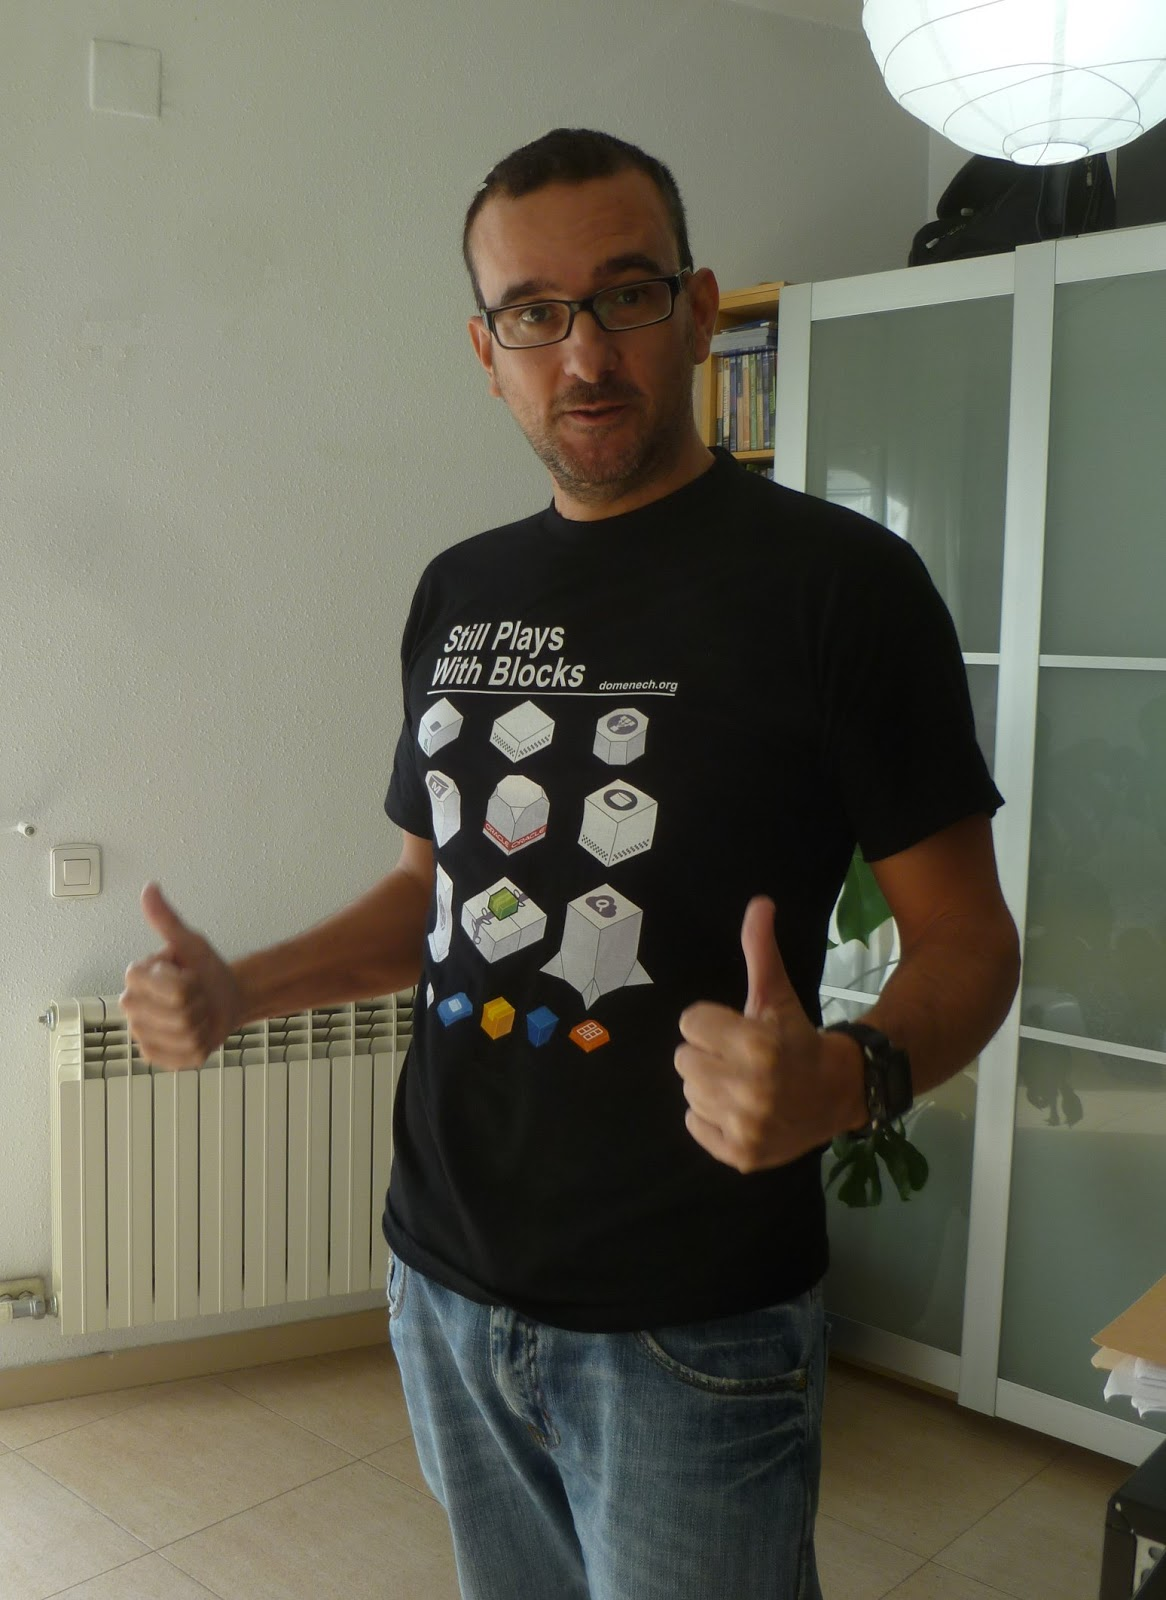 blog-domenech-org-still-plays-with-blocks-t-shirt-aws-diagram